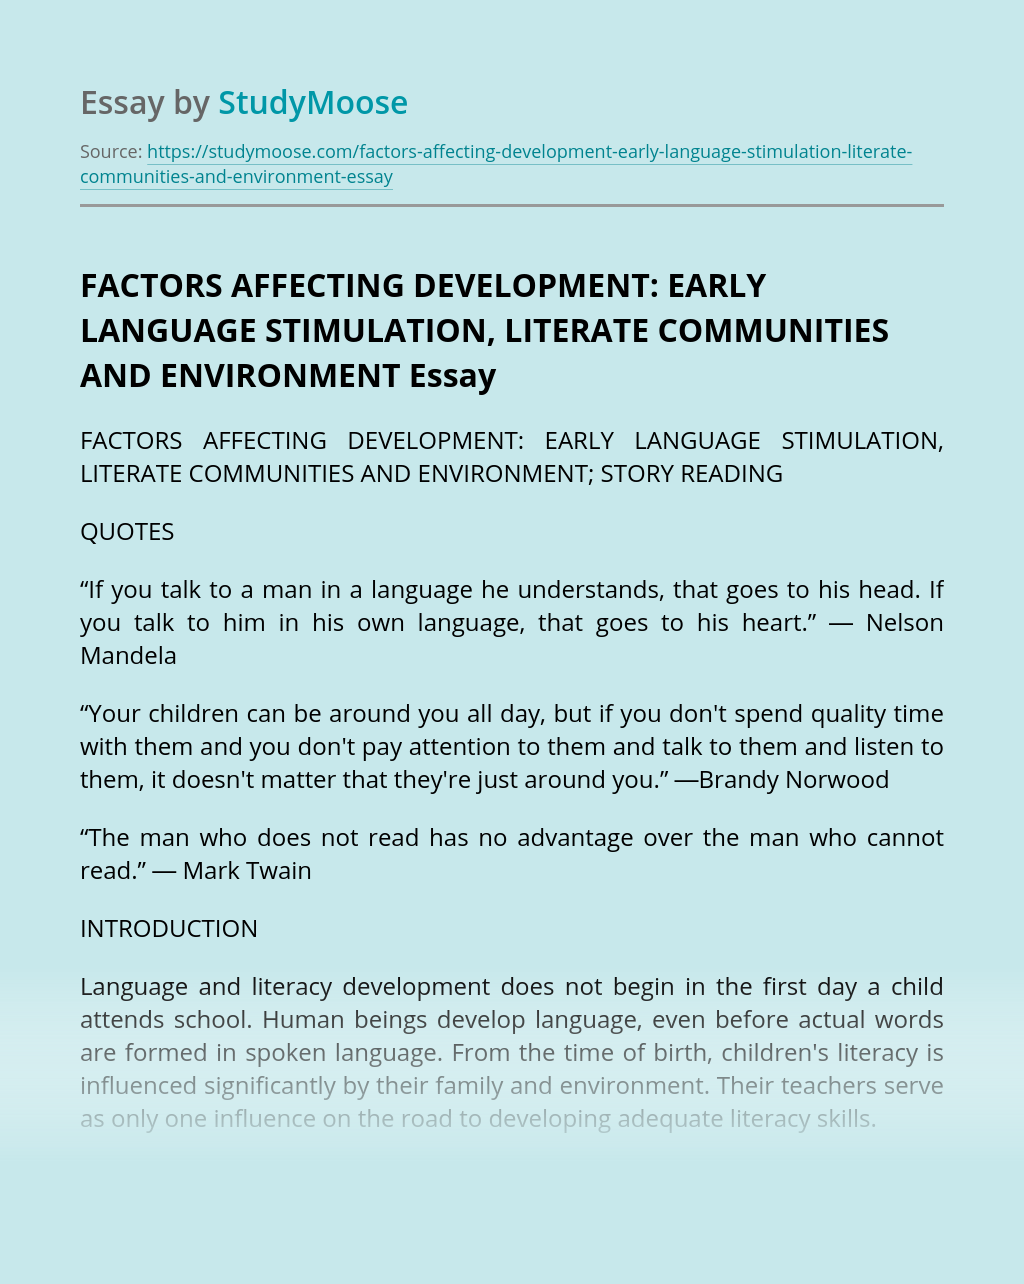 FACTORS AFFECTING DEVELOPMENT:  EARLY LANGUAGE STIMULATION, LITERATE COMMUNITIES AND ENVIRONMENT